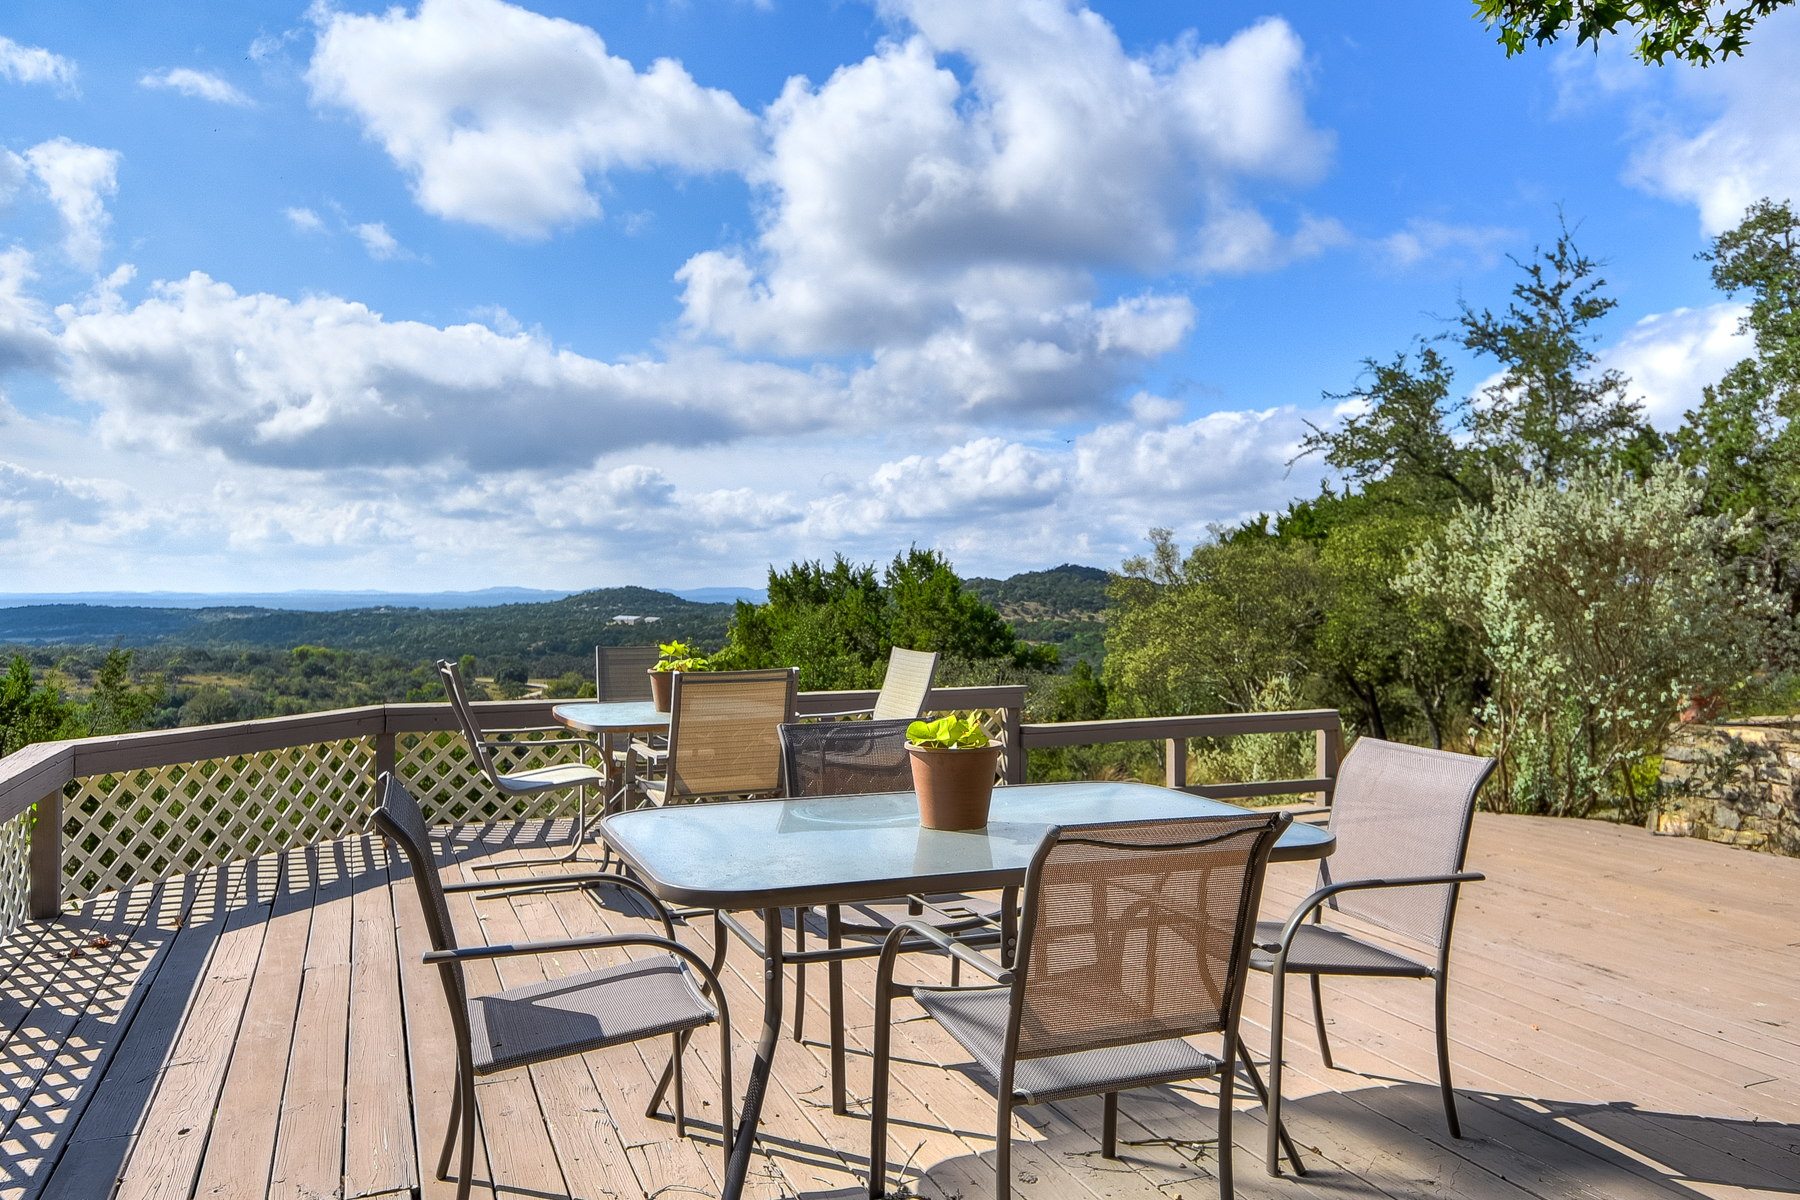 Casa Unifamiliar por un Venta en Stunning Views From Spacious Home on Over 5 Acres 113 Valley View Trl Comfort, Texas 78013 Estados Unidos